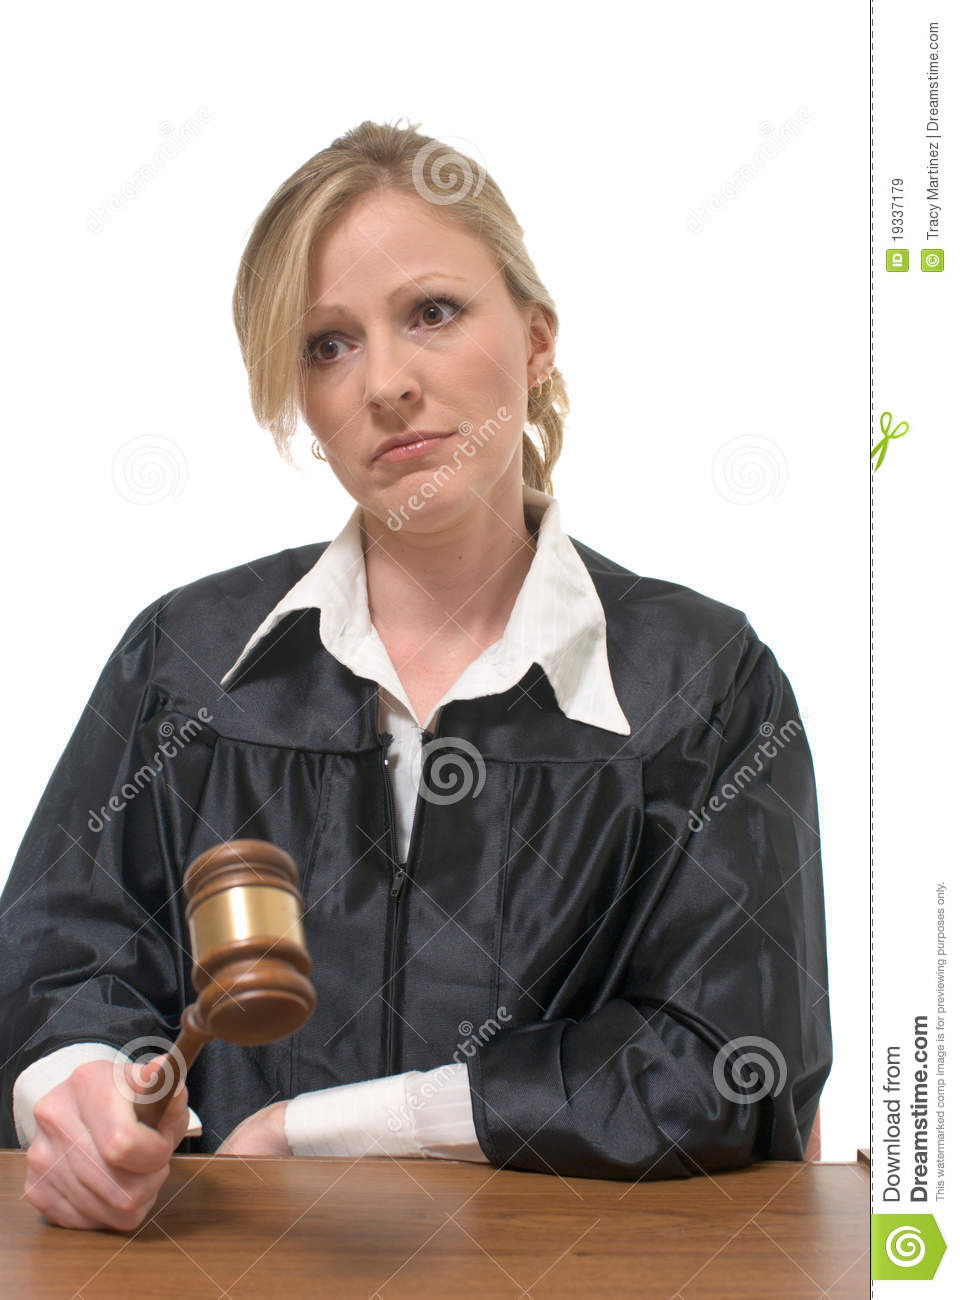 Stern Looking Woman Judge Stock Image Image Of Judgment